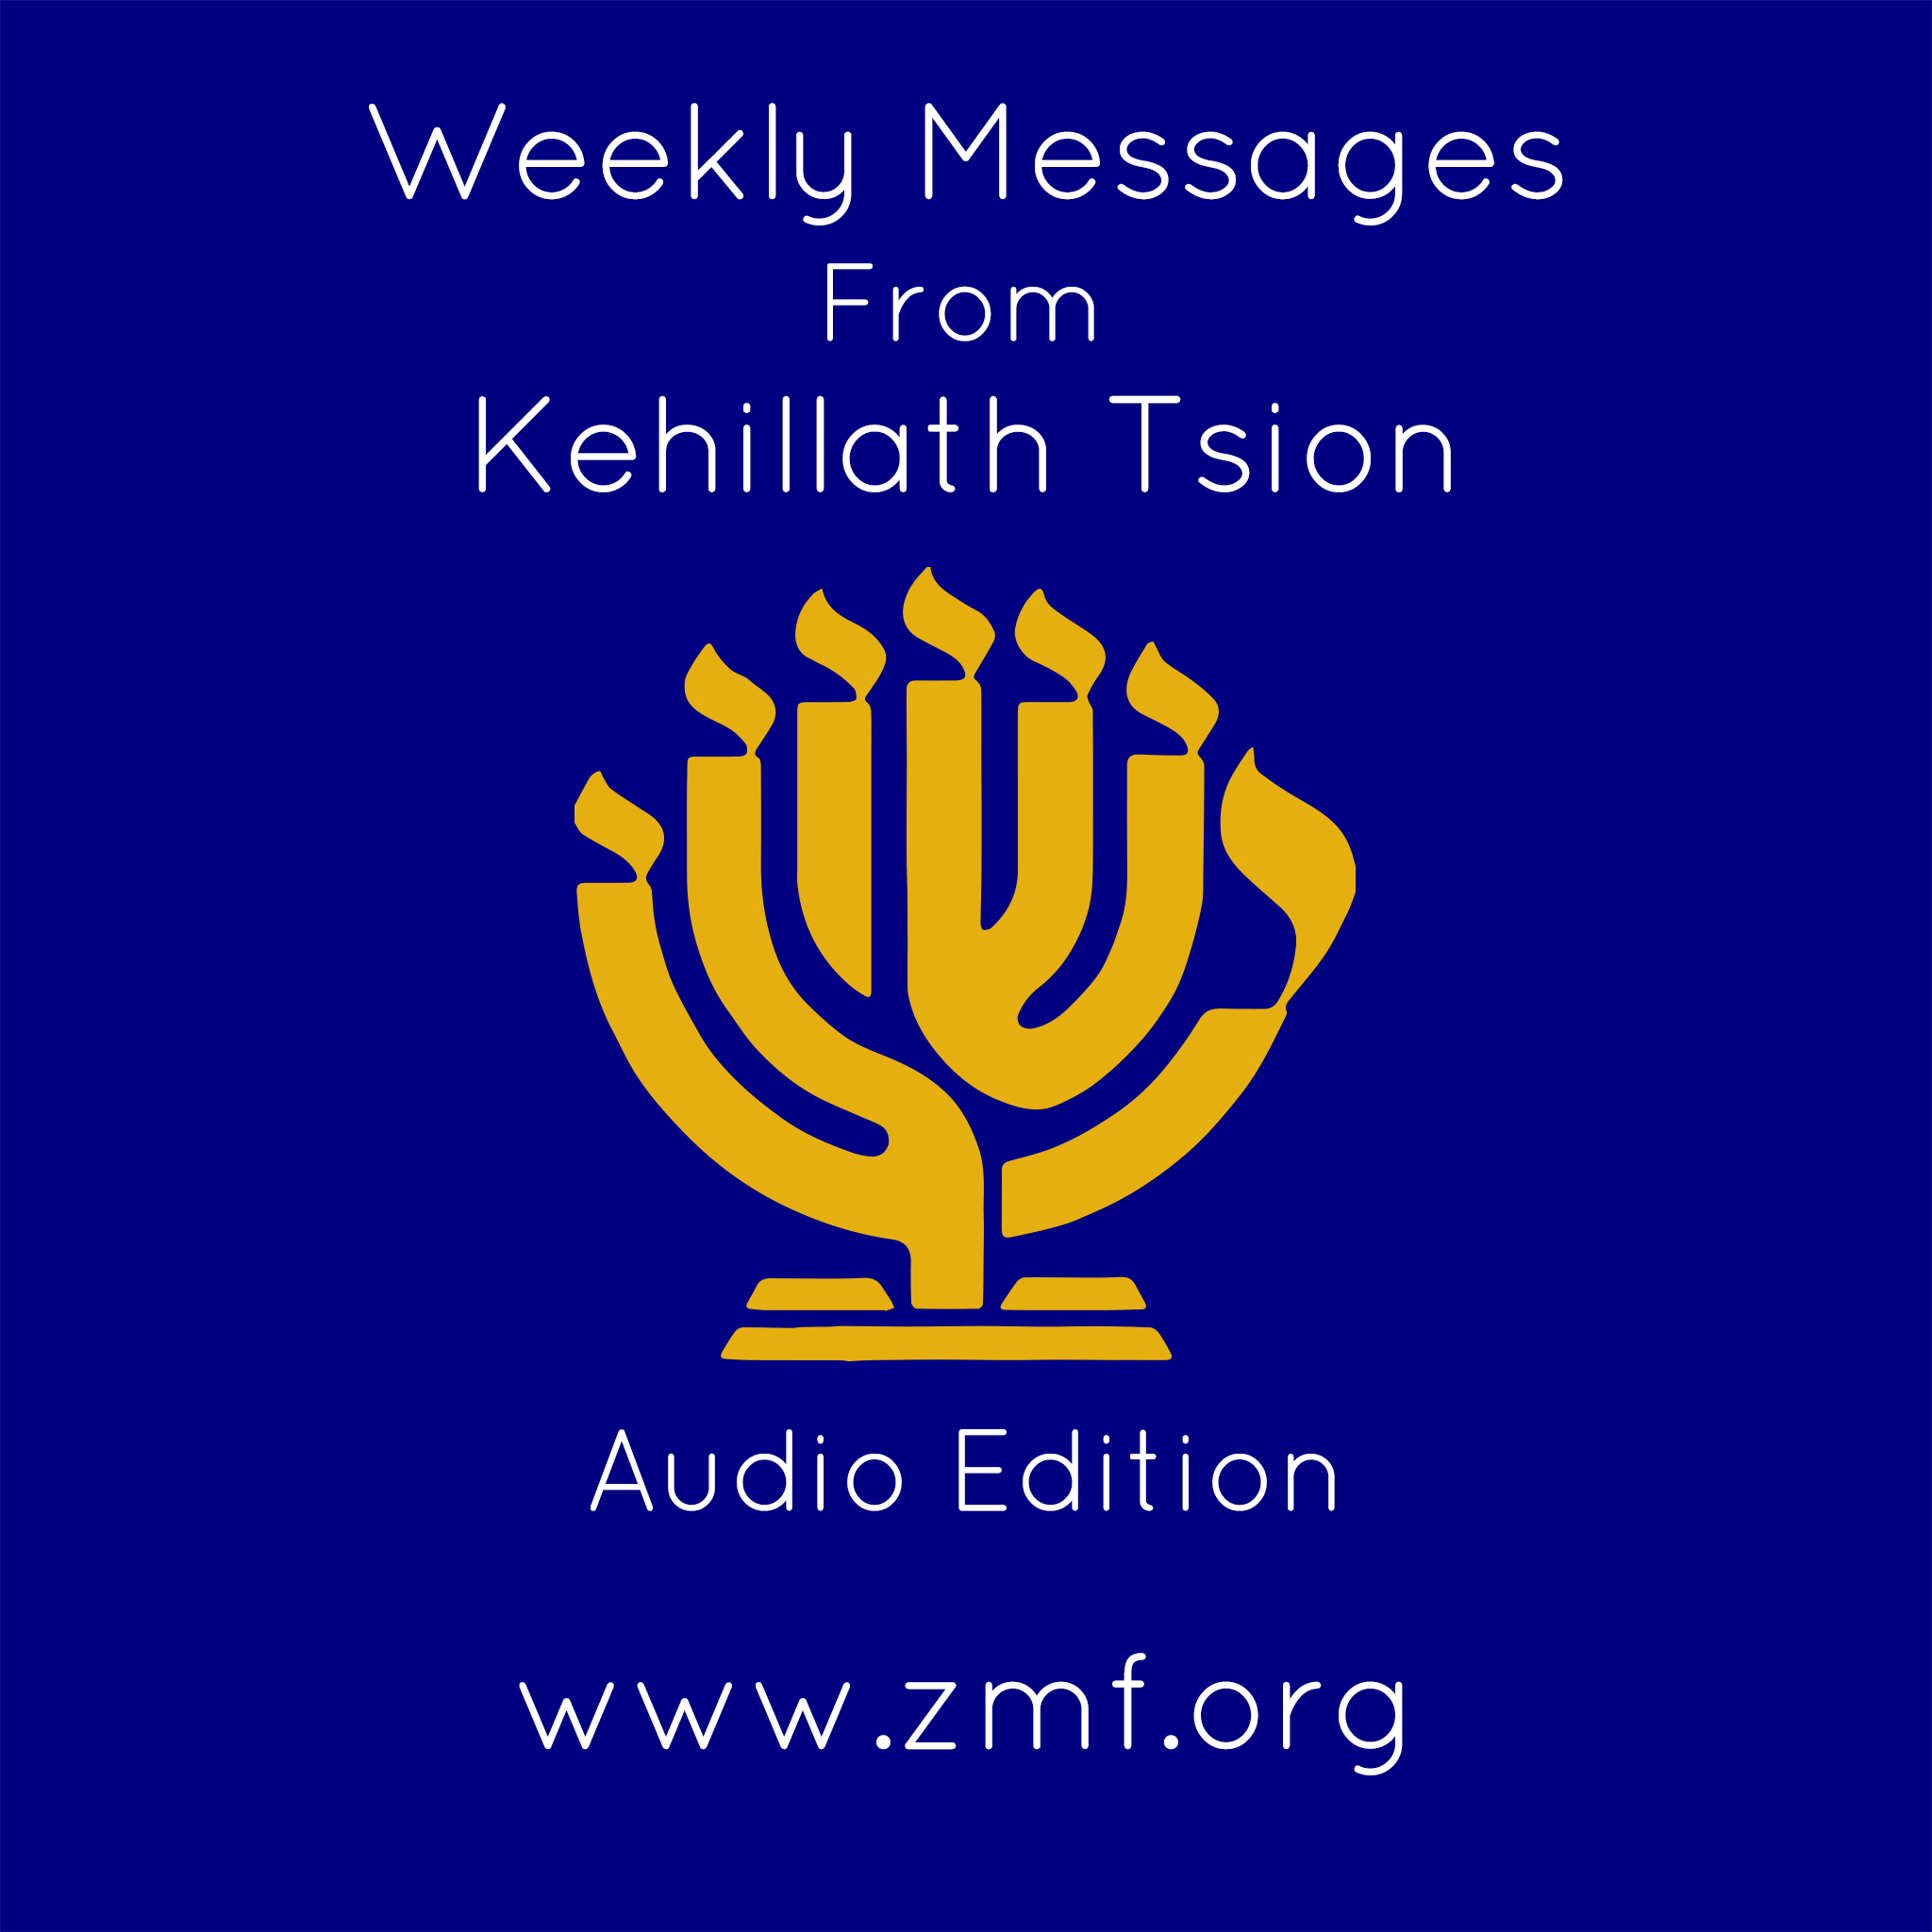 Kehillath Tsion Weekly Messages